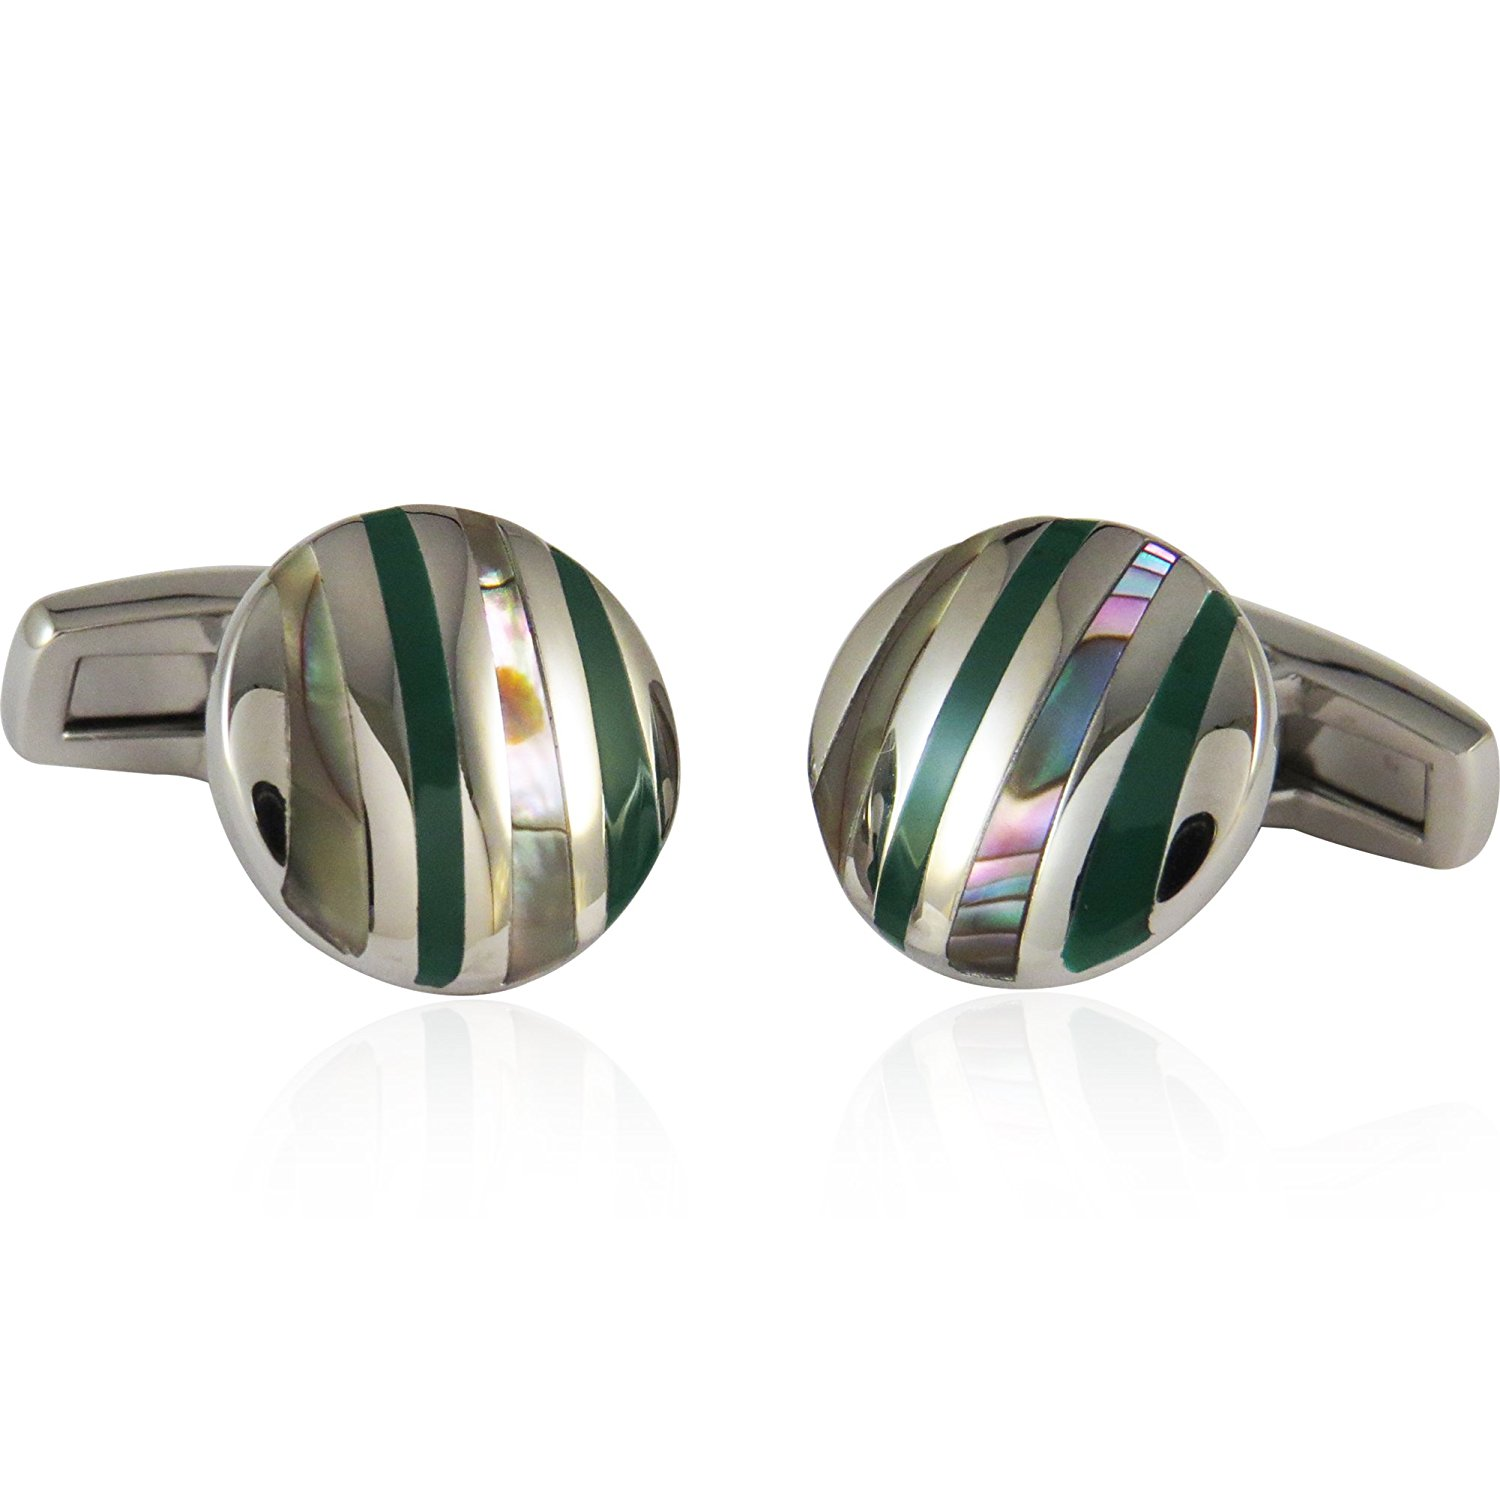 Cuff-Daddy Abalone and Green Striped Stainless Steel Cufflinks with Presentation Box